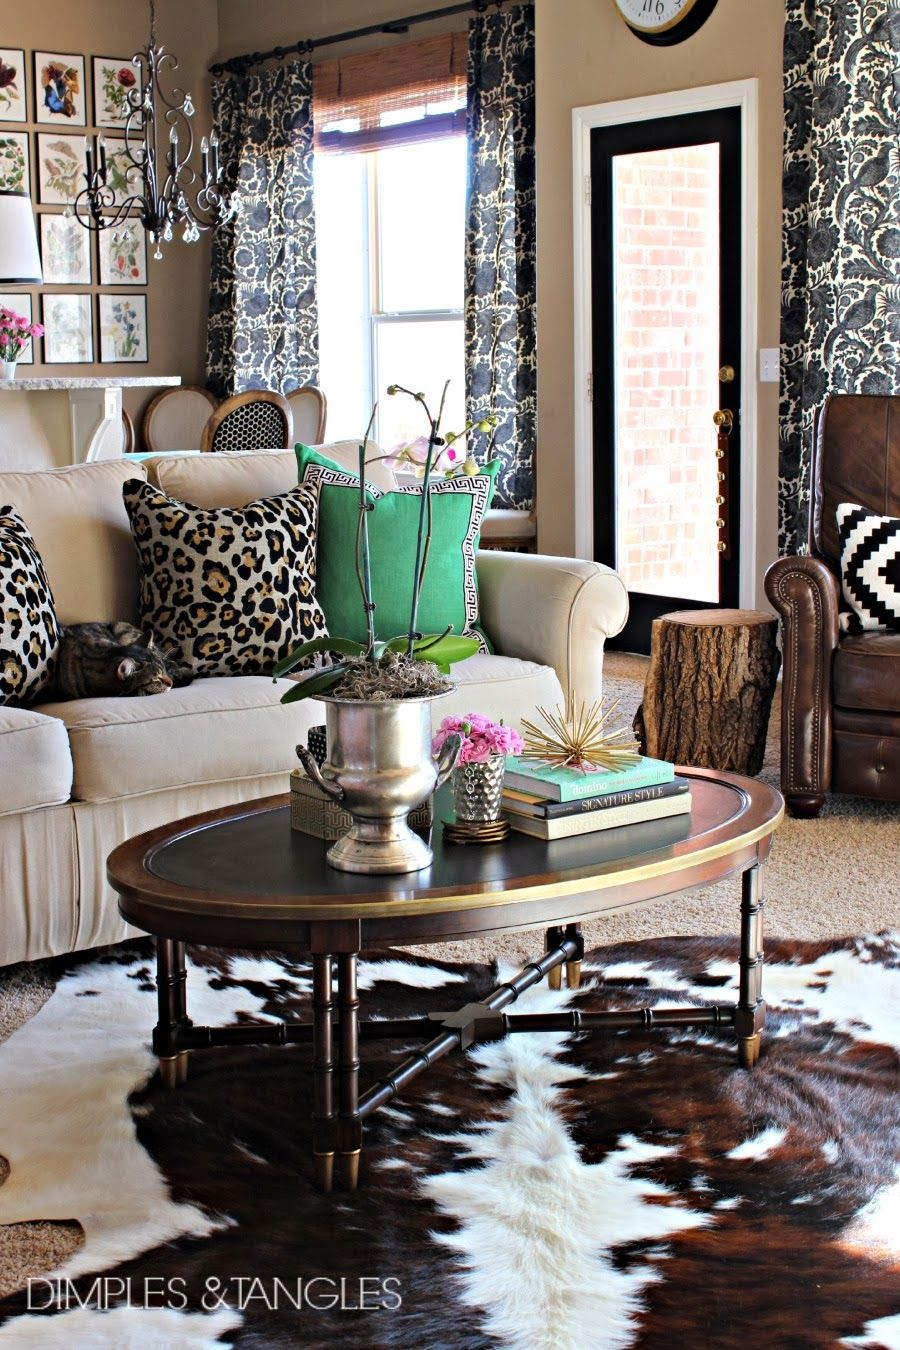 Dimples and Tangles MY THOUGHTS ON COWHIDE RUGS Rugs in